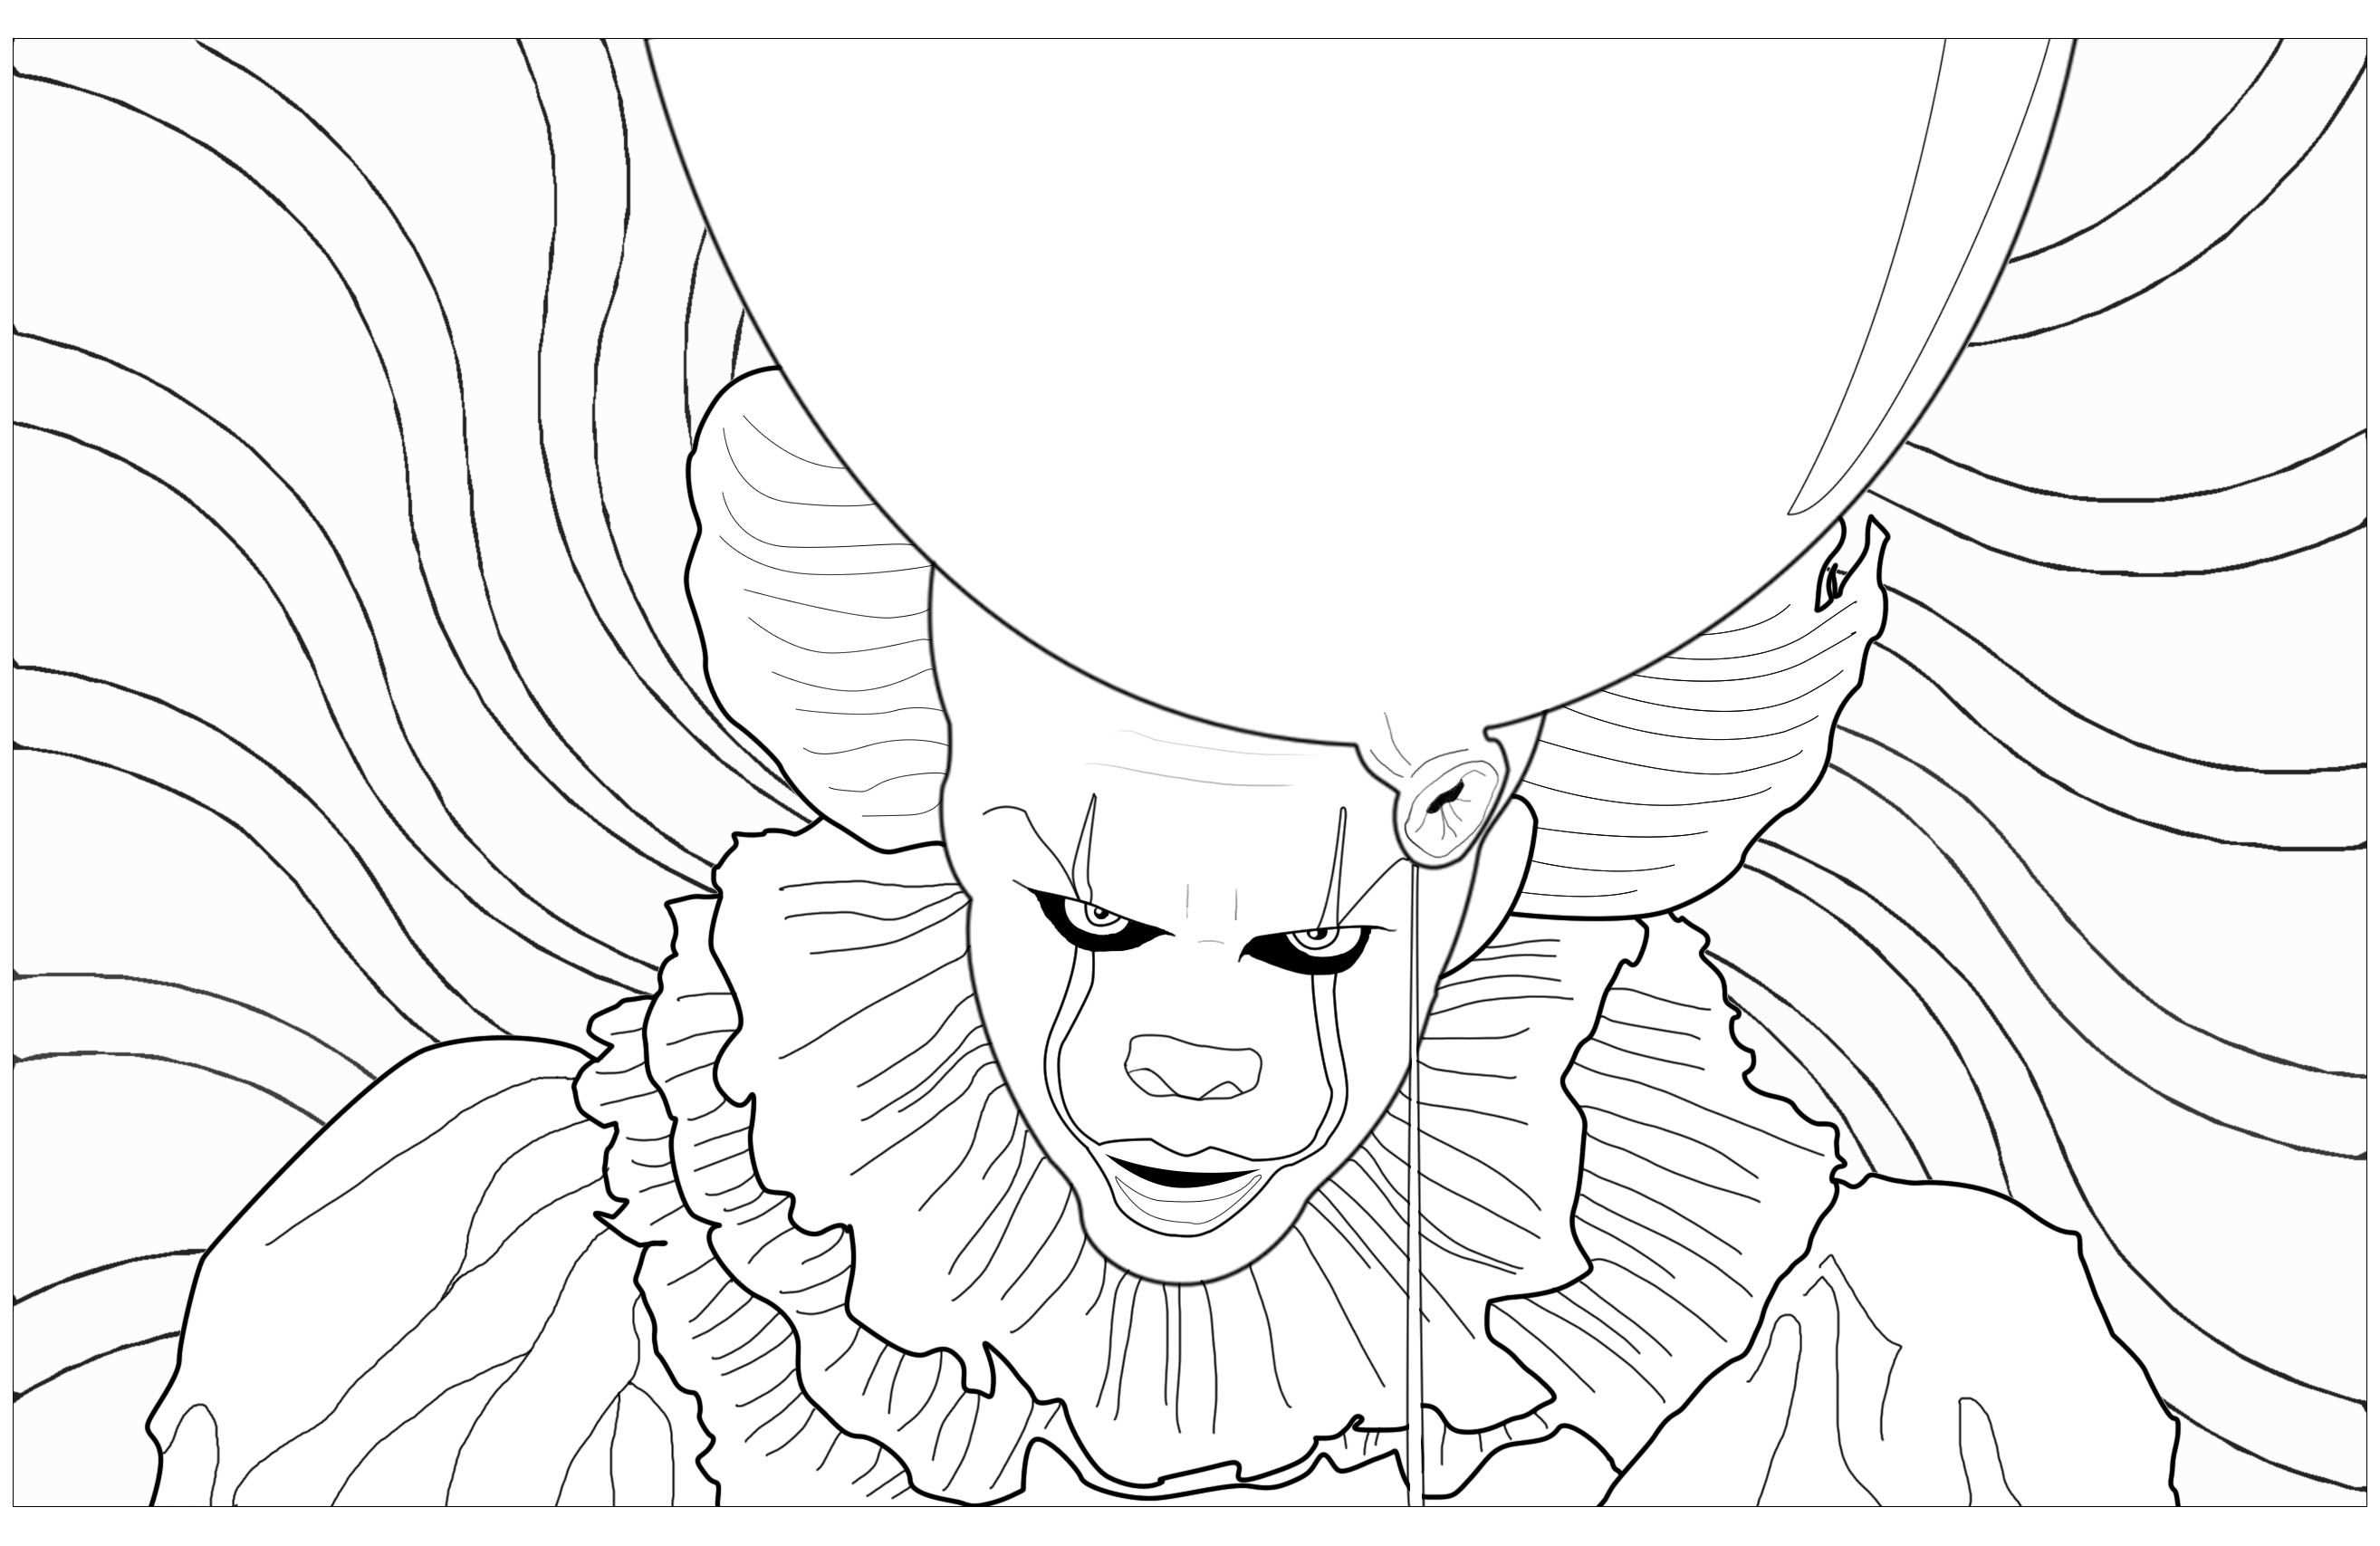 Pennywise The Maleficent Clown From The 2017 Movie It From